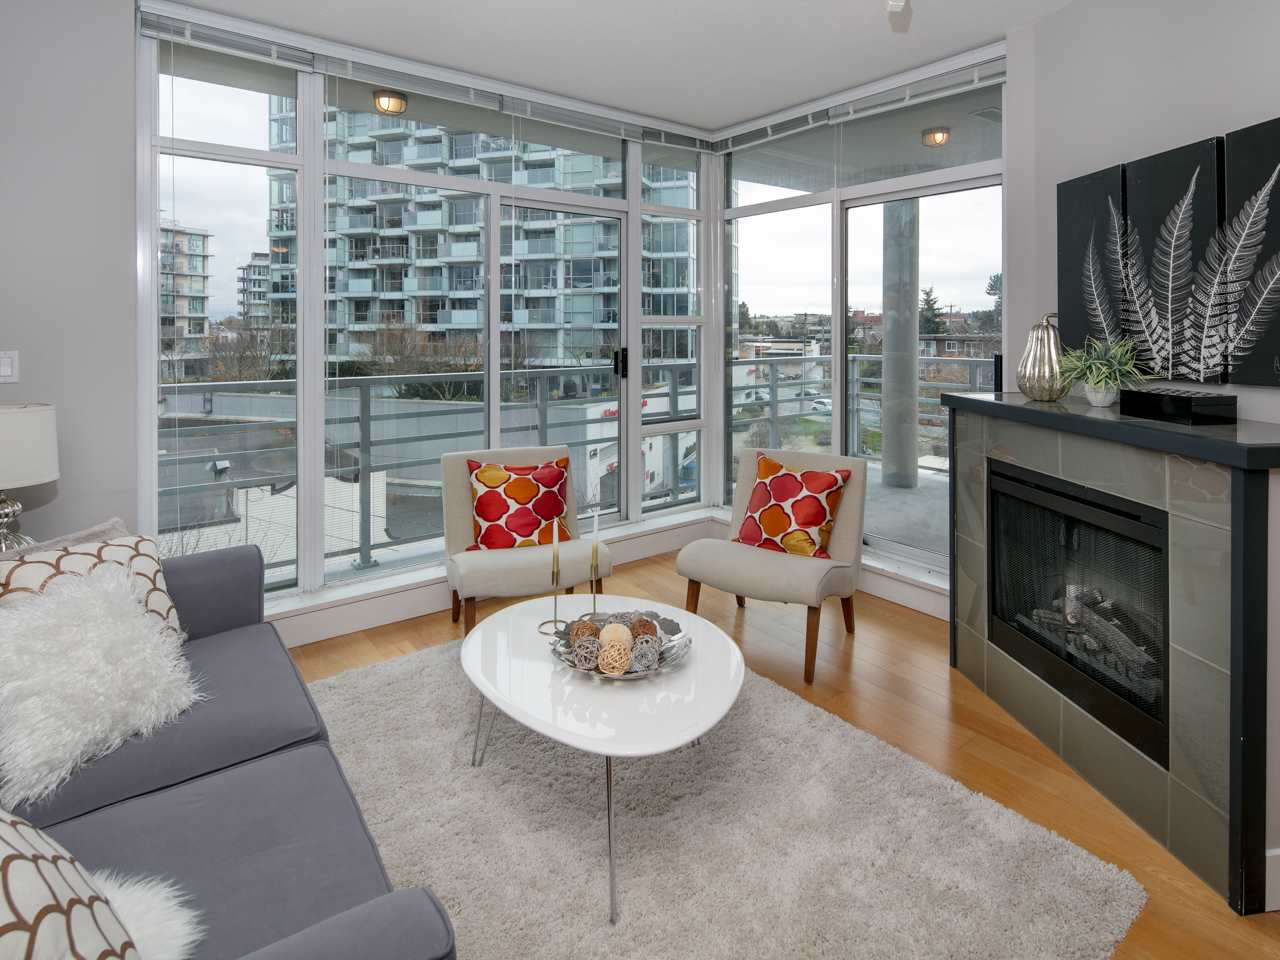 "Photo 9: 512 298 E 11TH Avenue in Vancouver: Mount Pleasant VE Condo for sale in ""The Sophia"" (Vancouver East)  : MLS(r) # R2124368"